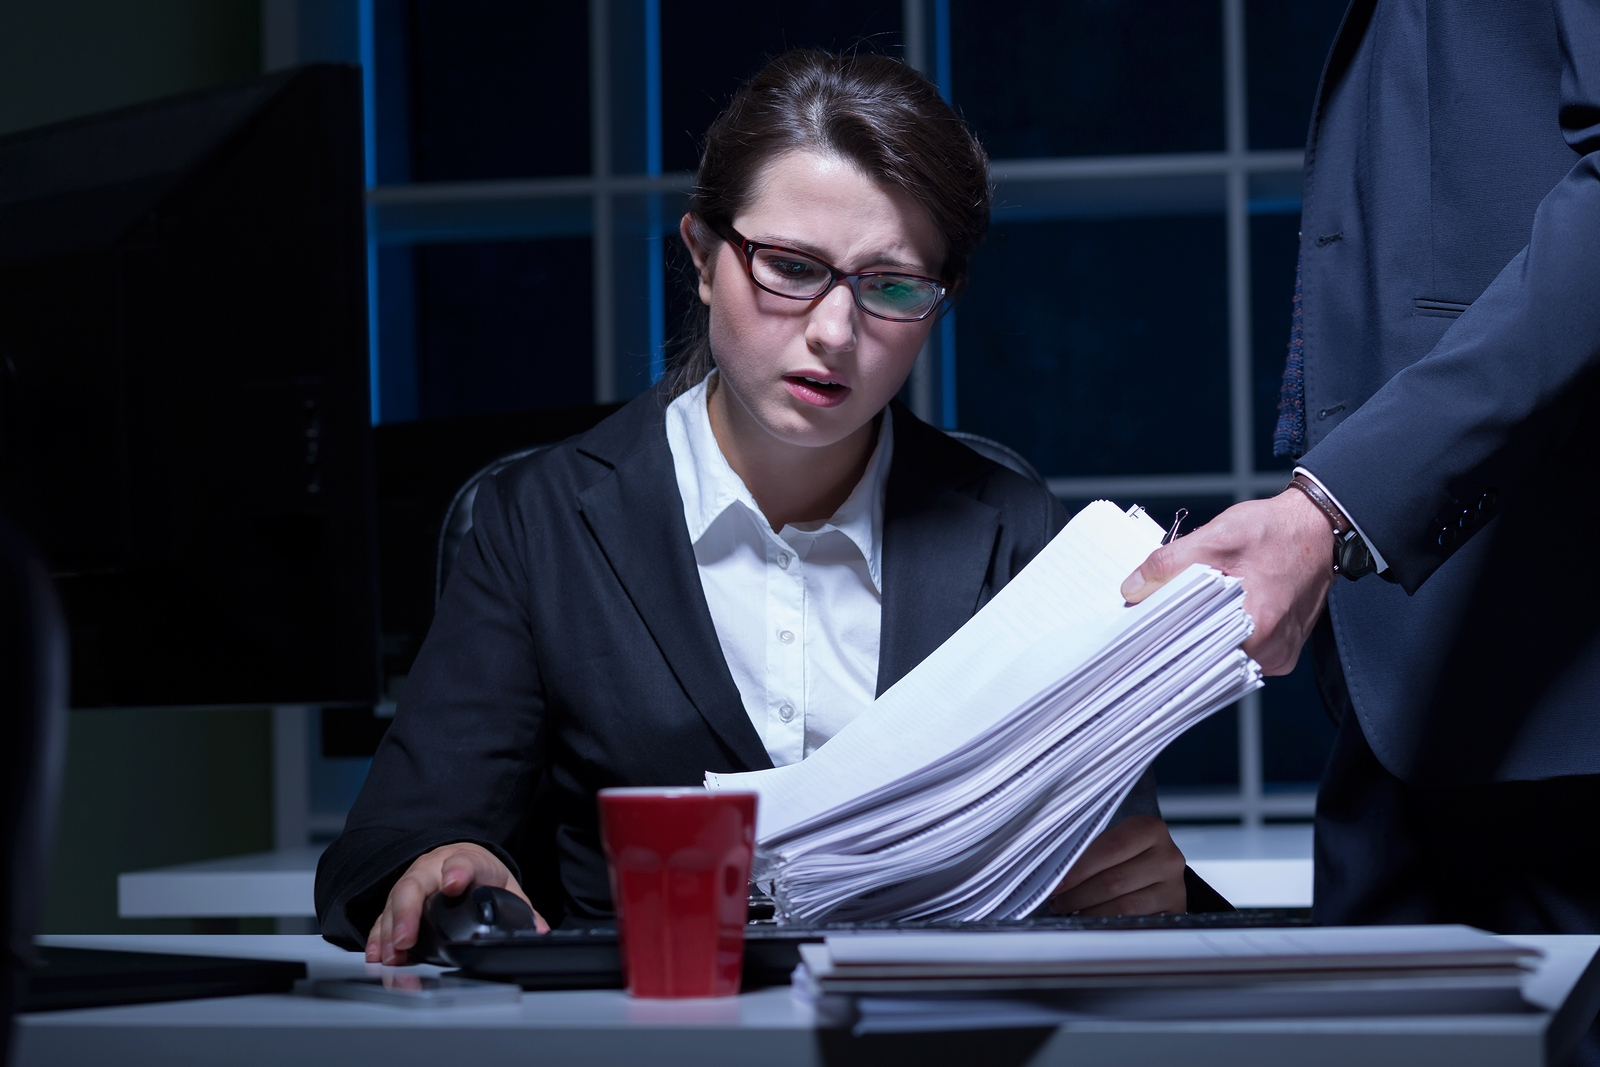 Missing Overtime & Misclassification | Kansas City Employment Lawyers